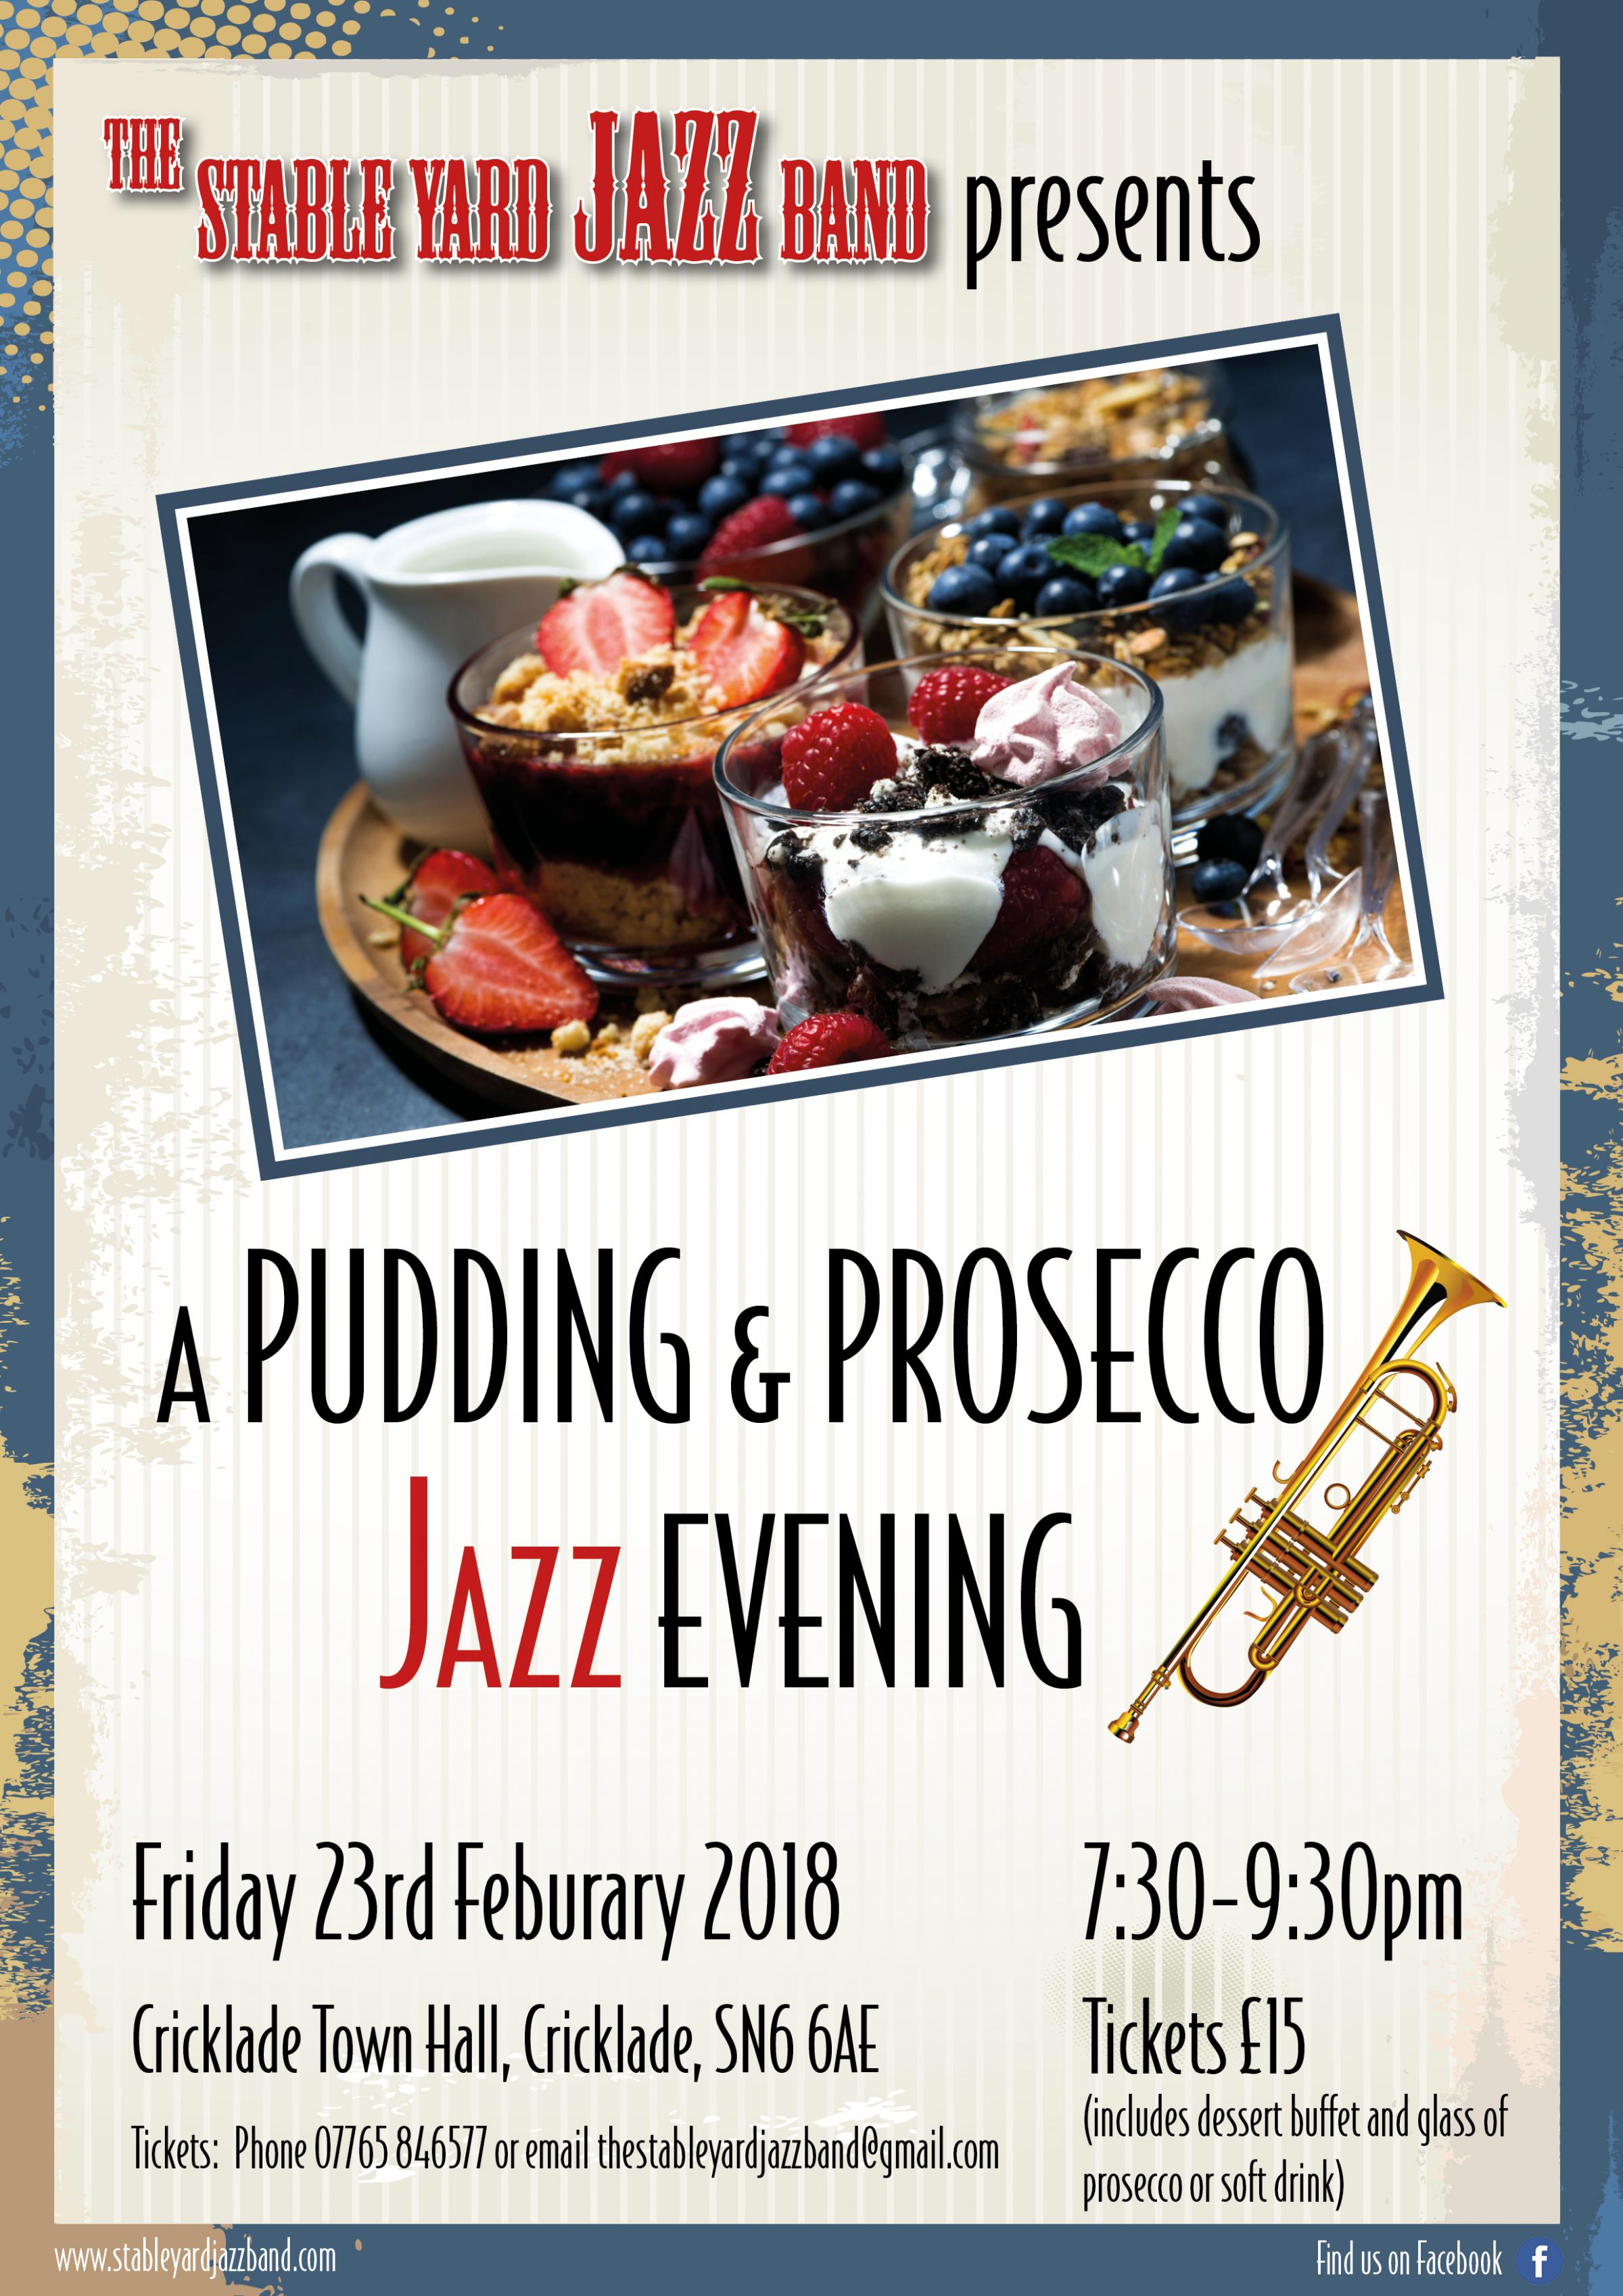 Pudding and Prosecco Jazz Evening